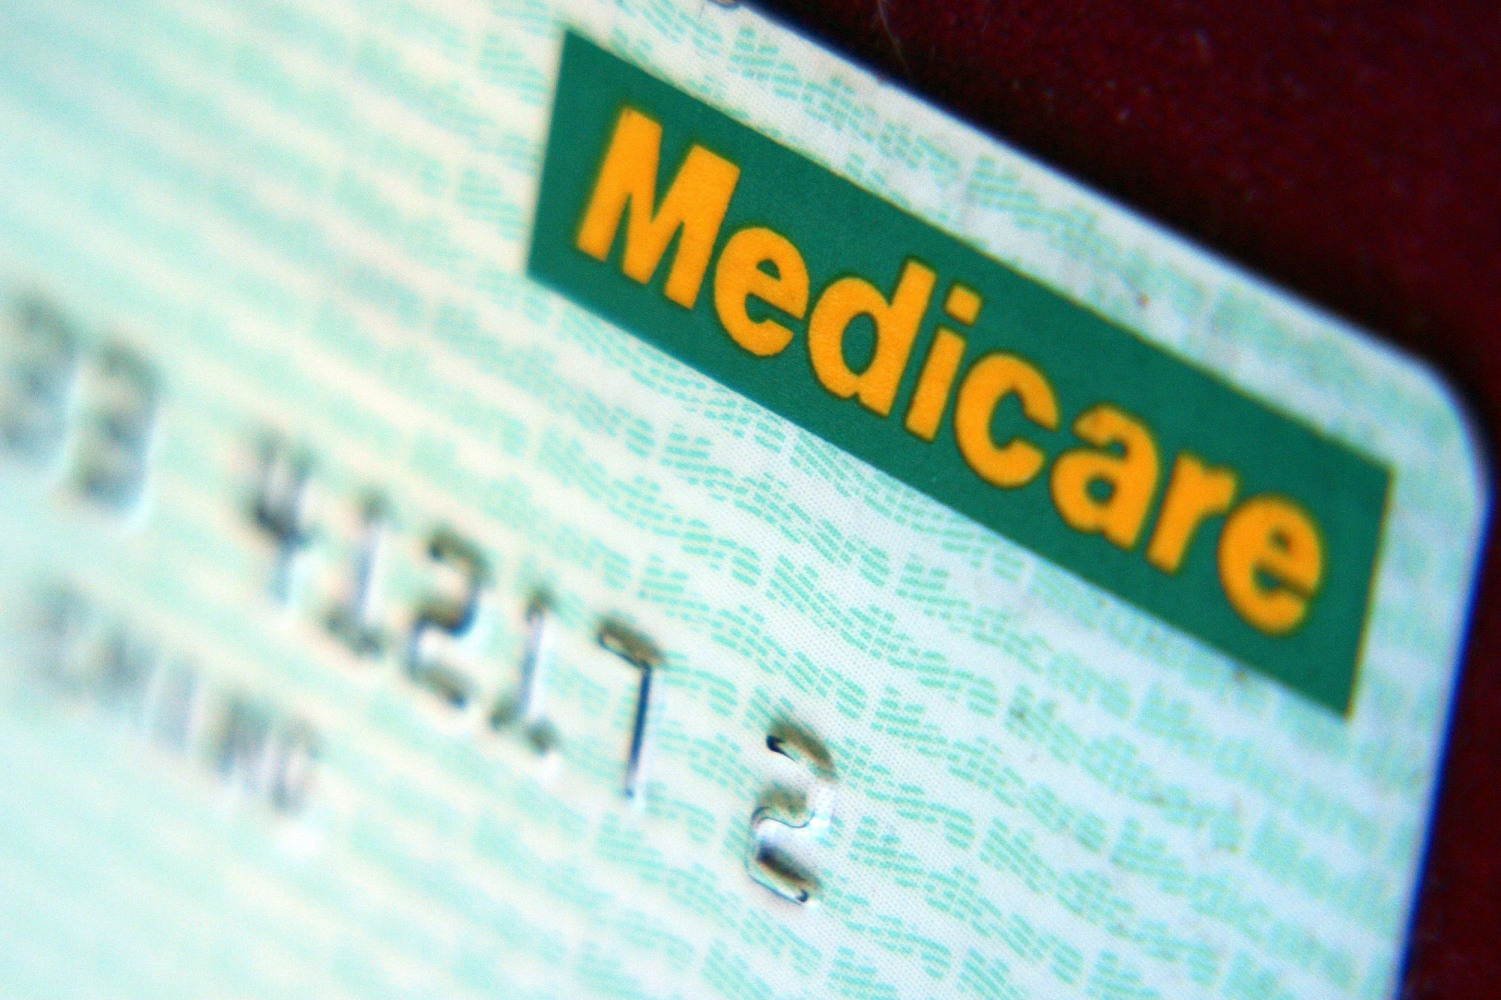 New Medicare cards start rolling out in April 2018